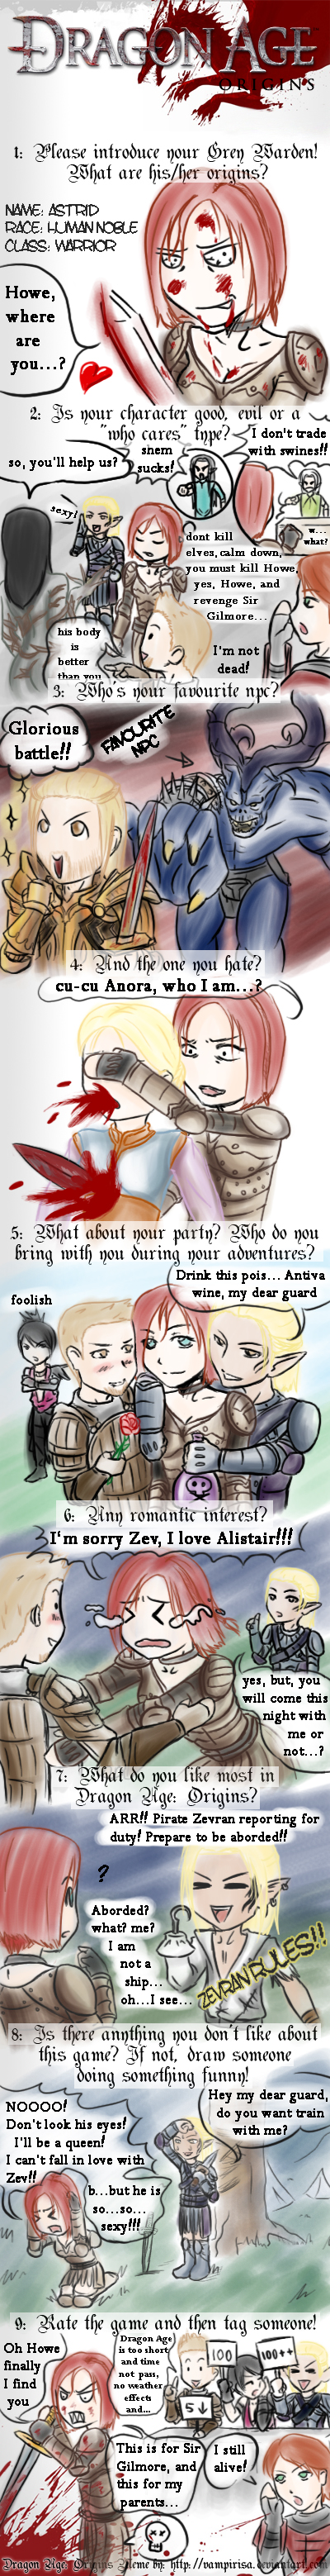 Dragon_Age_Meme_by_PoemiChan.jpg